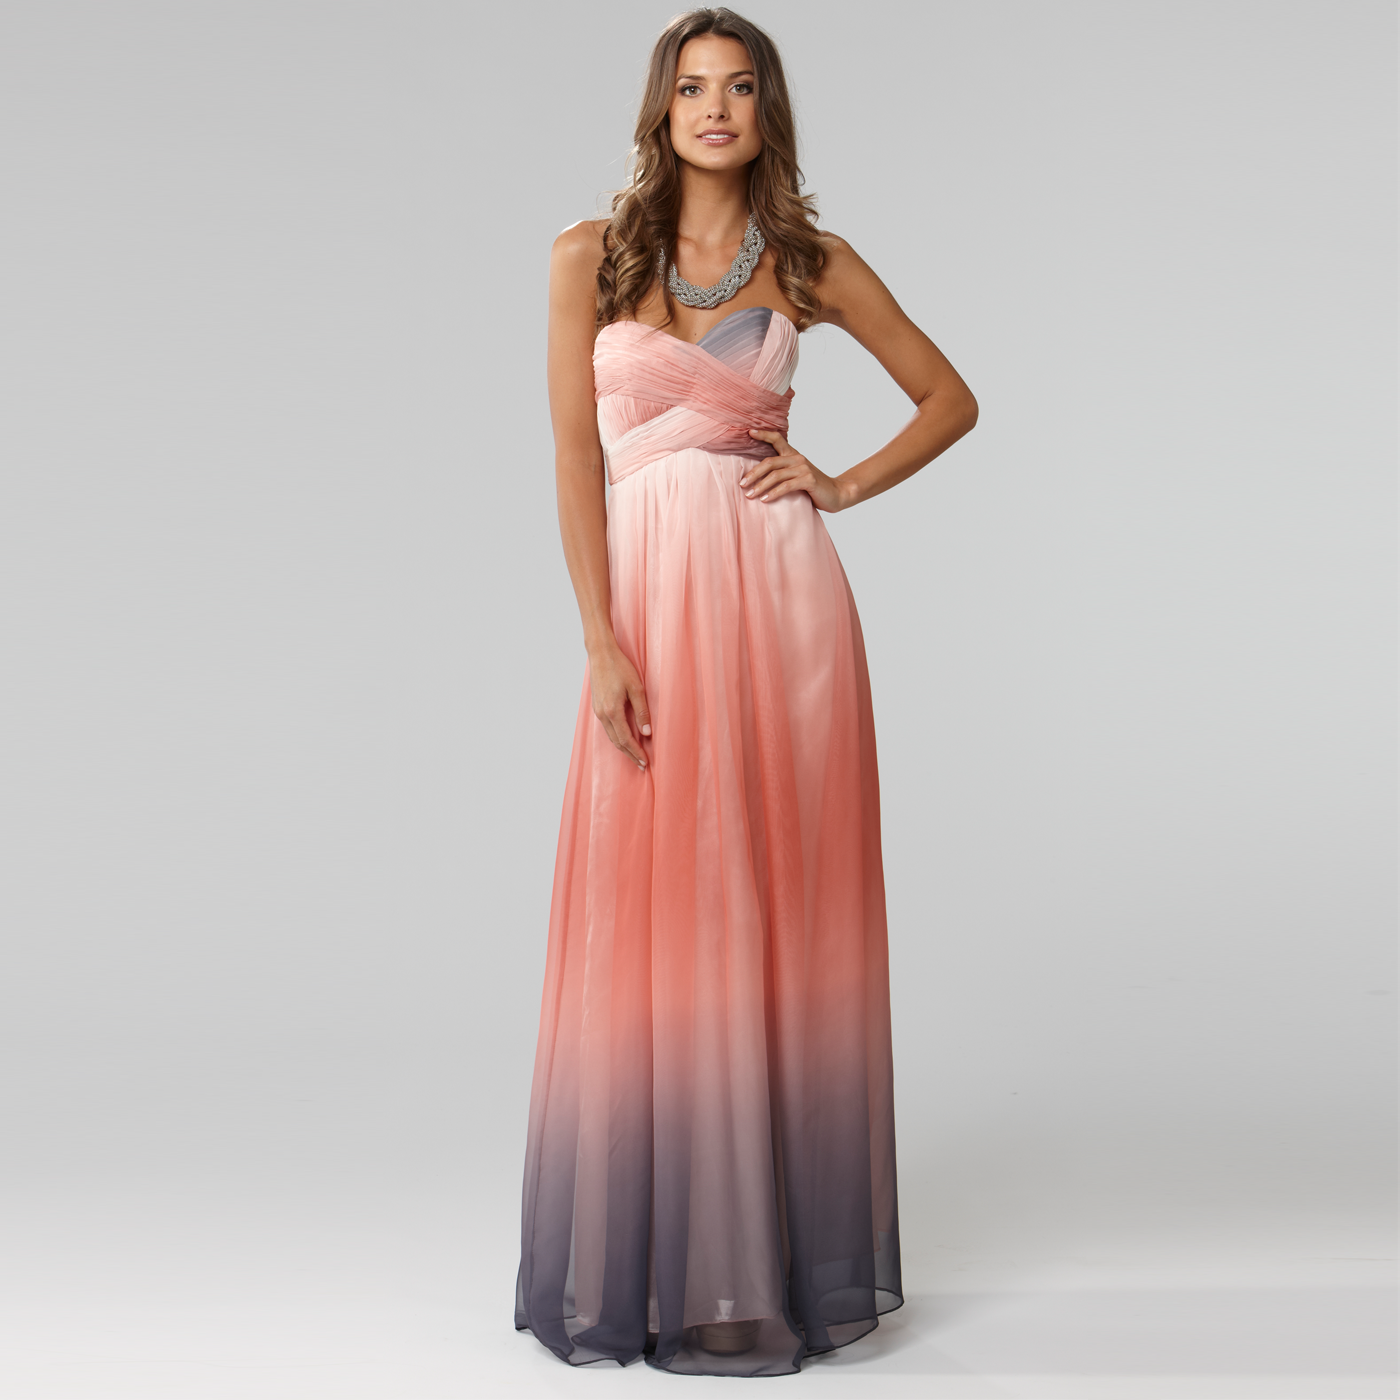 Langham mona lisa coral sweetheart bust maxi dress